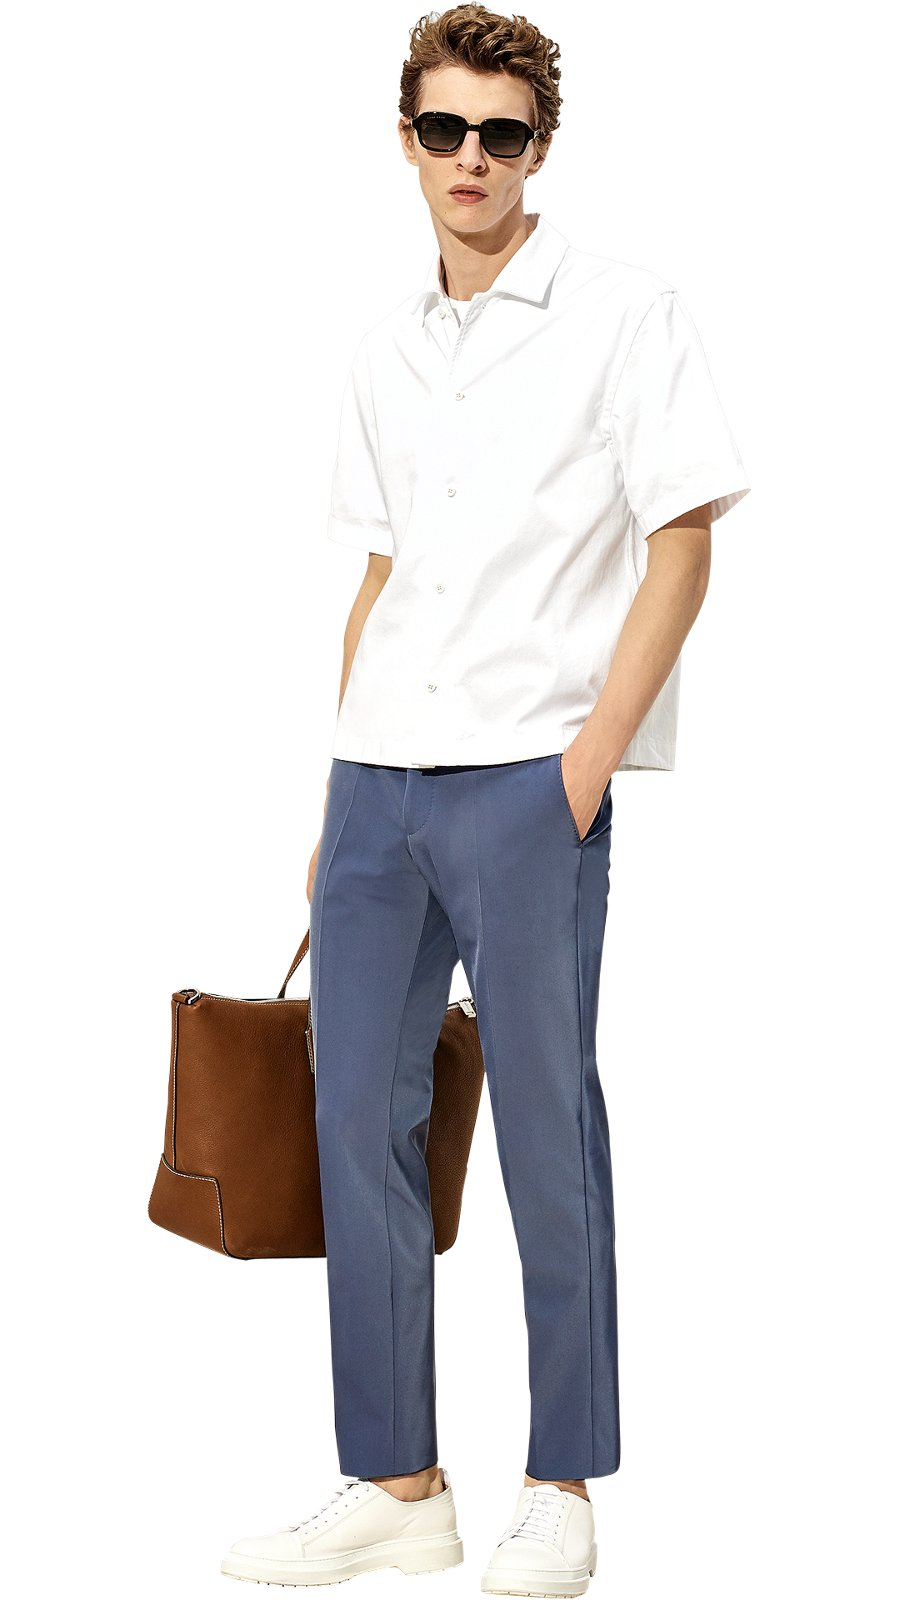 6475eb99 Man is wearing a white shirt, white t-shirt, blue trousers, ...